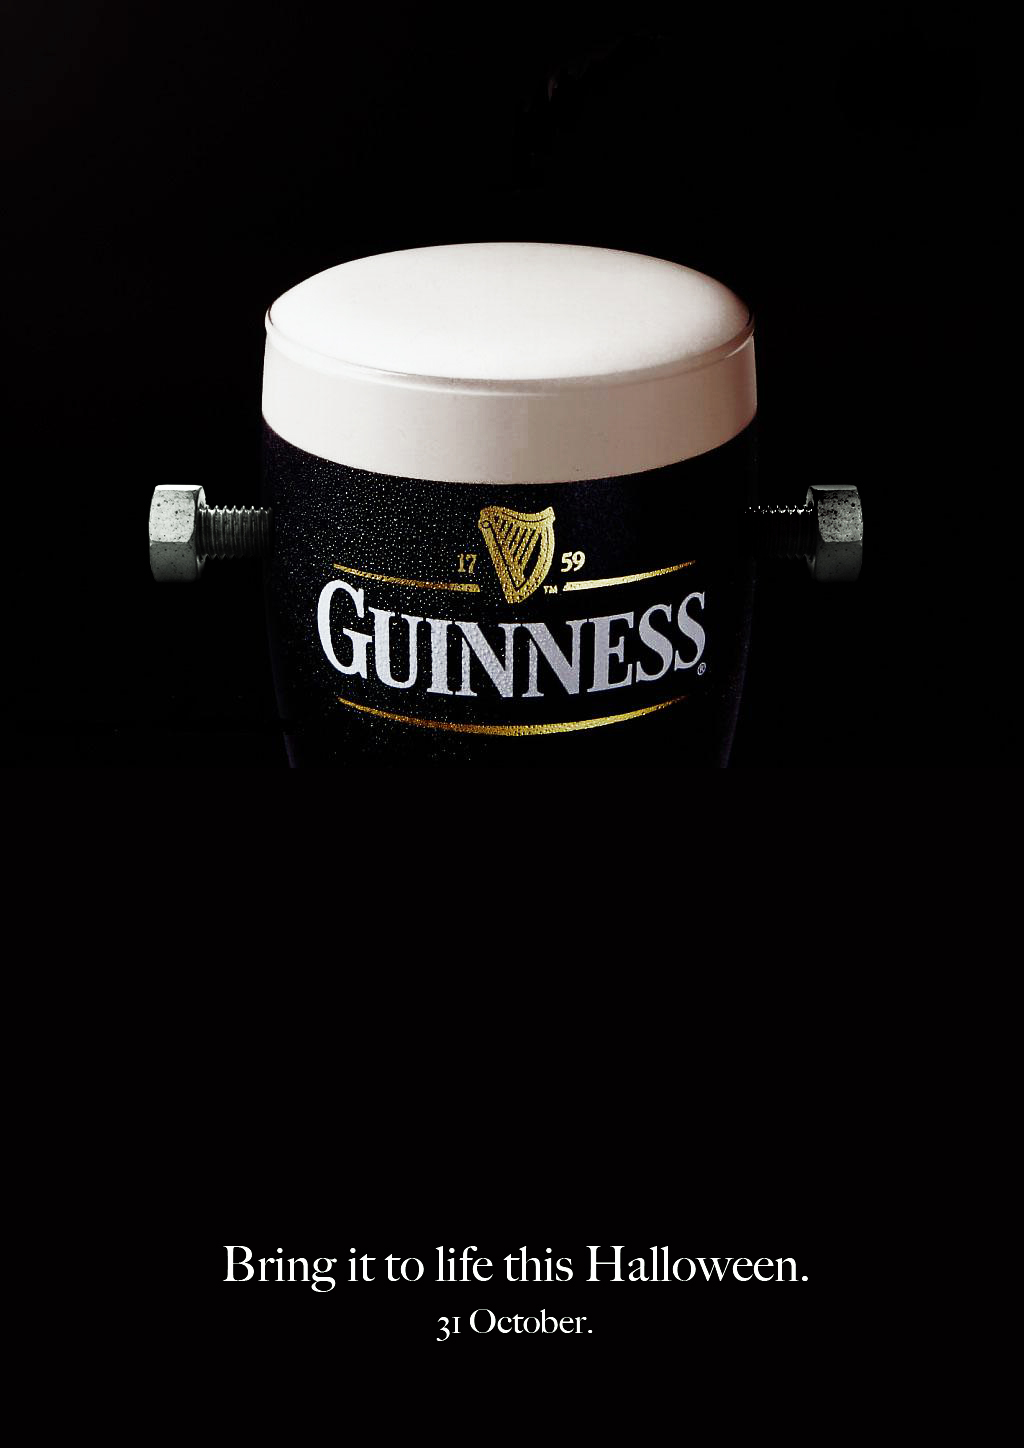 Is Guinness Craft Beer